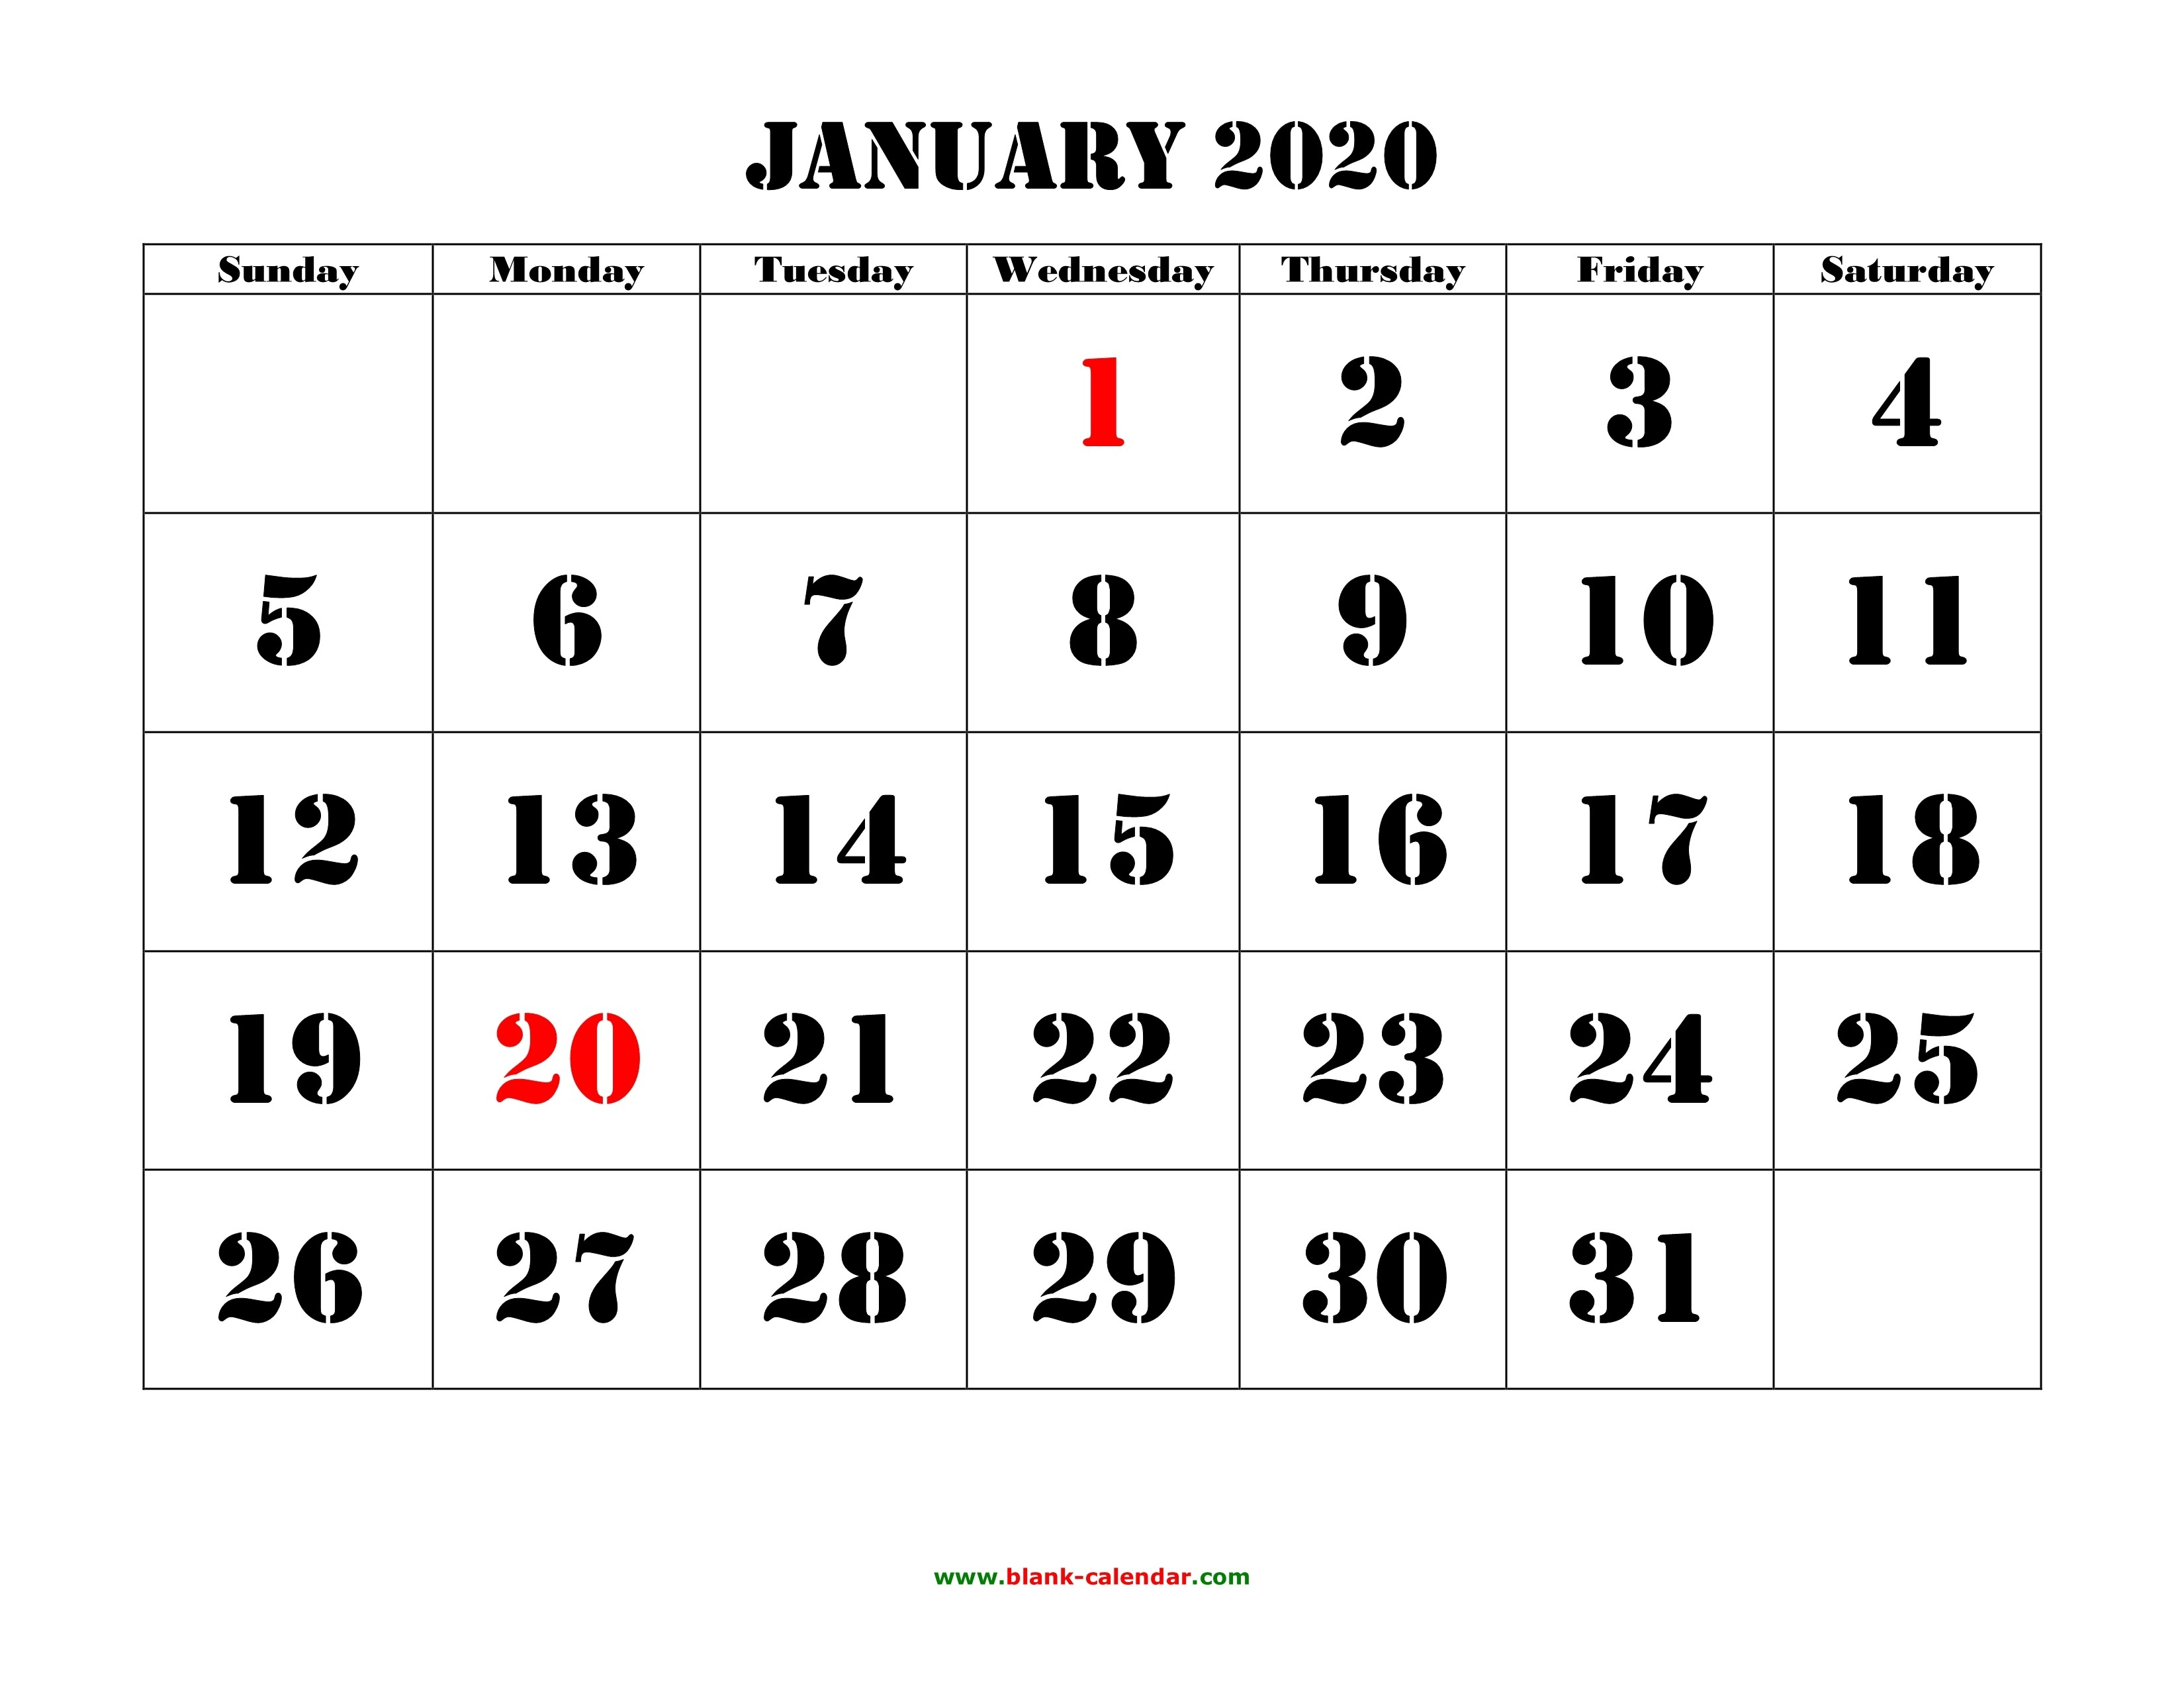 Printable January 2020 Calendar - Free Blank Templates-January 2020 Calendar With Holidays